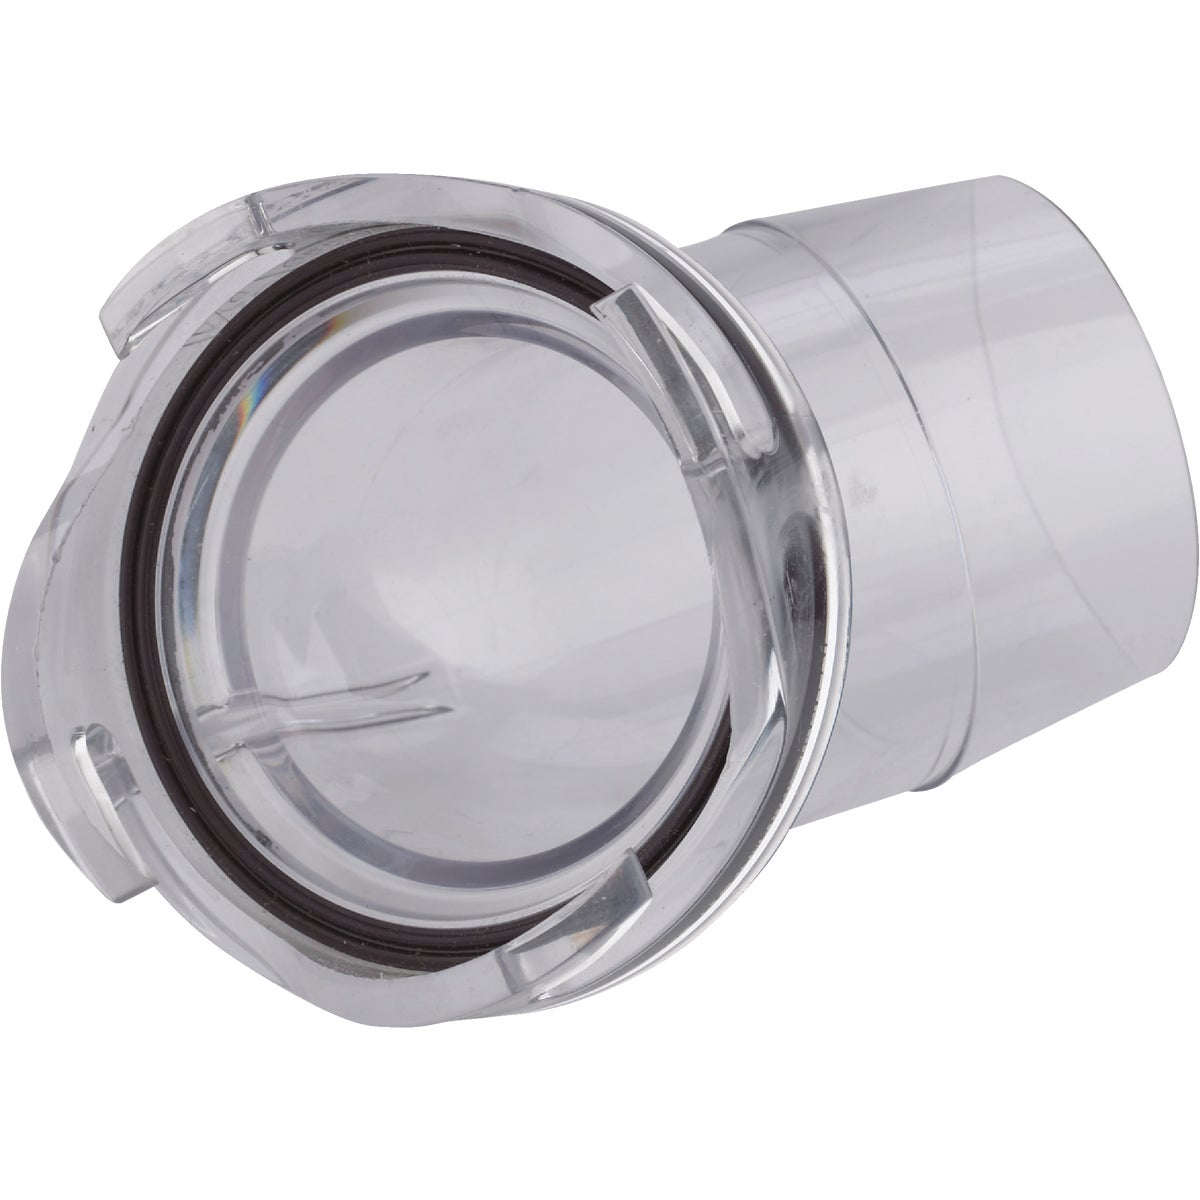 CLEAR 45D HOSE ADAPTER